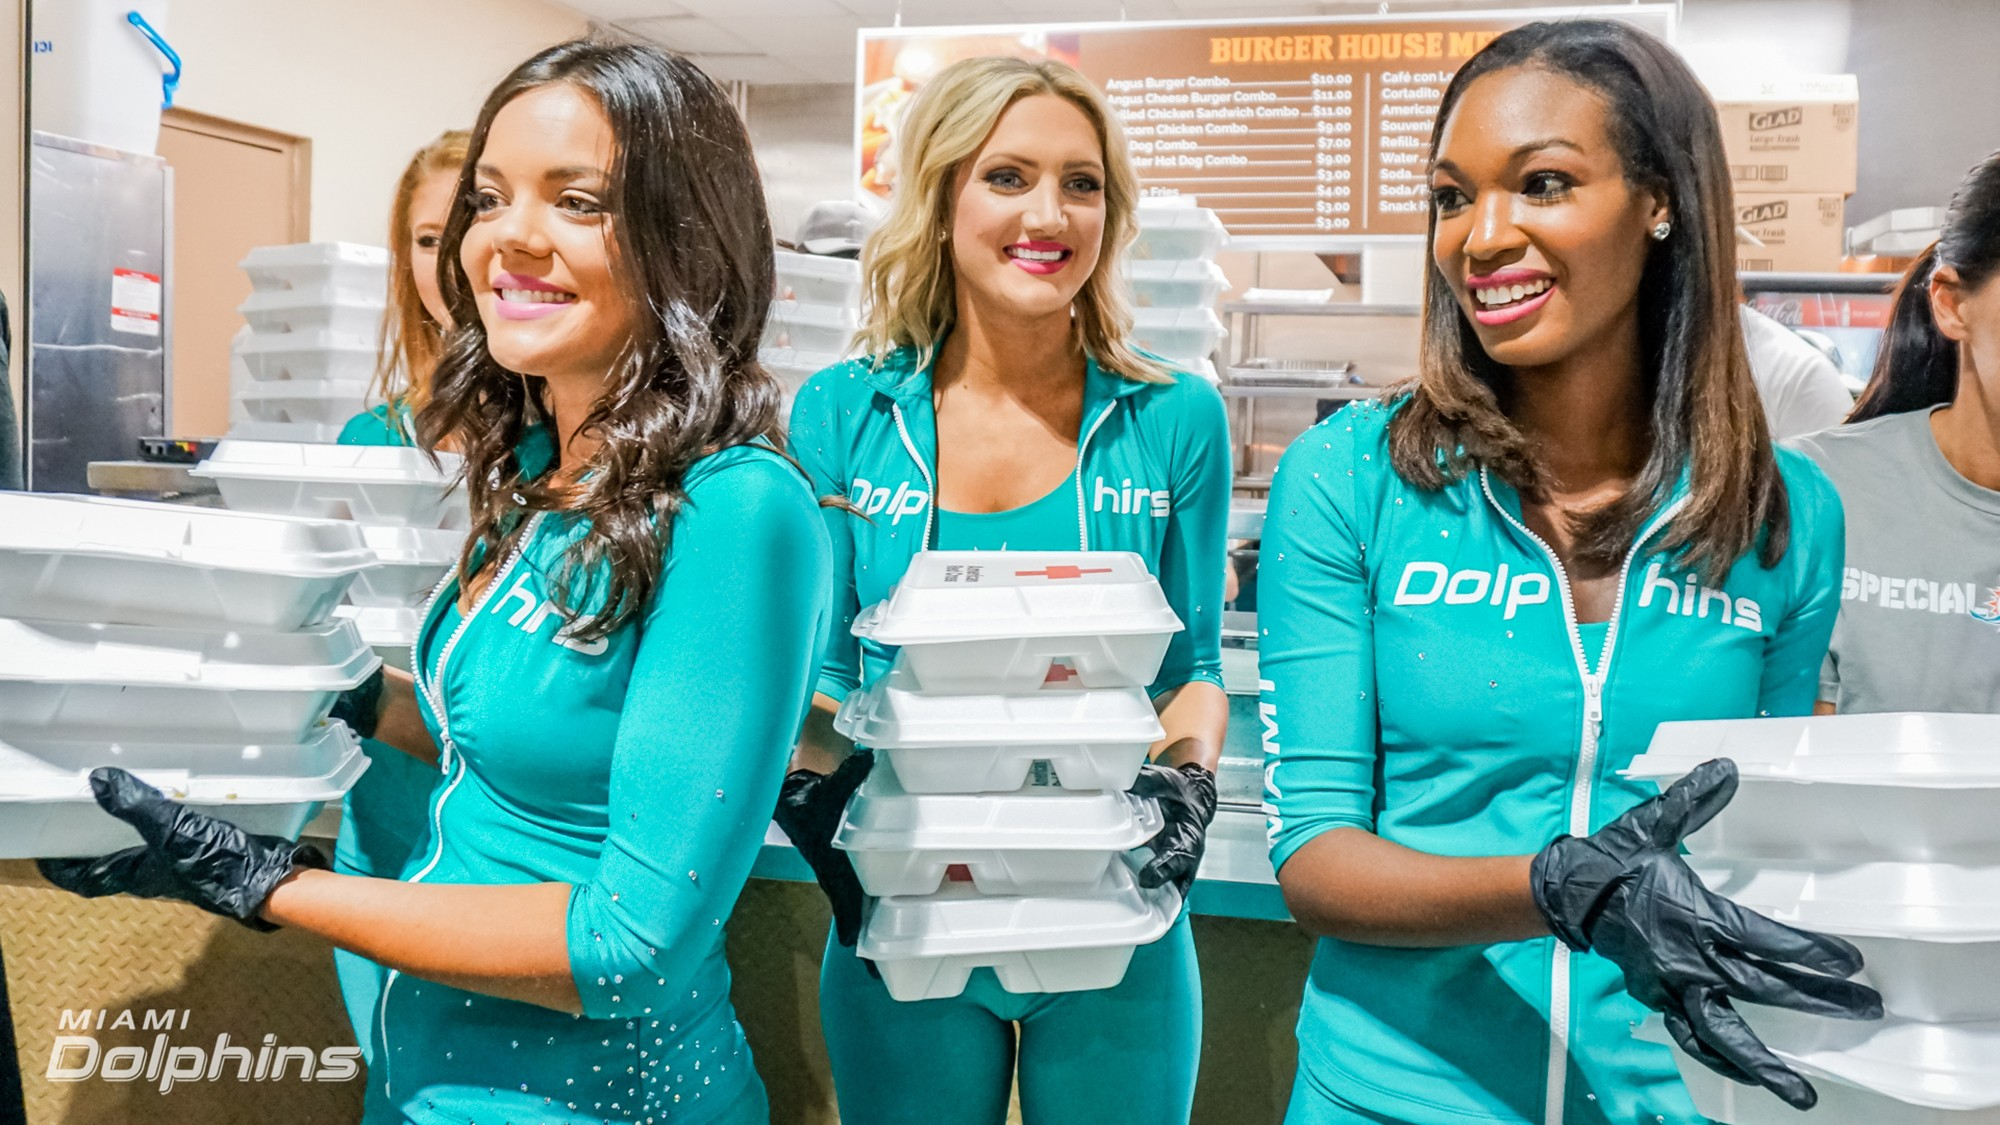 Miami Dolphins Cheerleaders (left to right) Etta, Jenny, and Jodi hand out meals at Red Cross Shelter